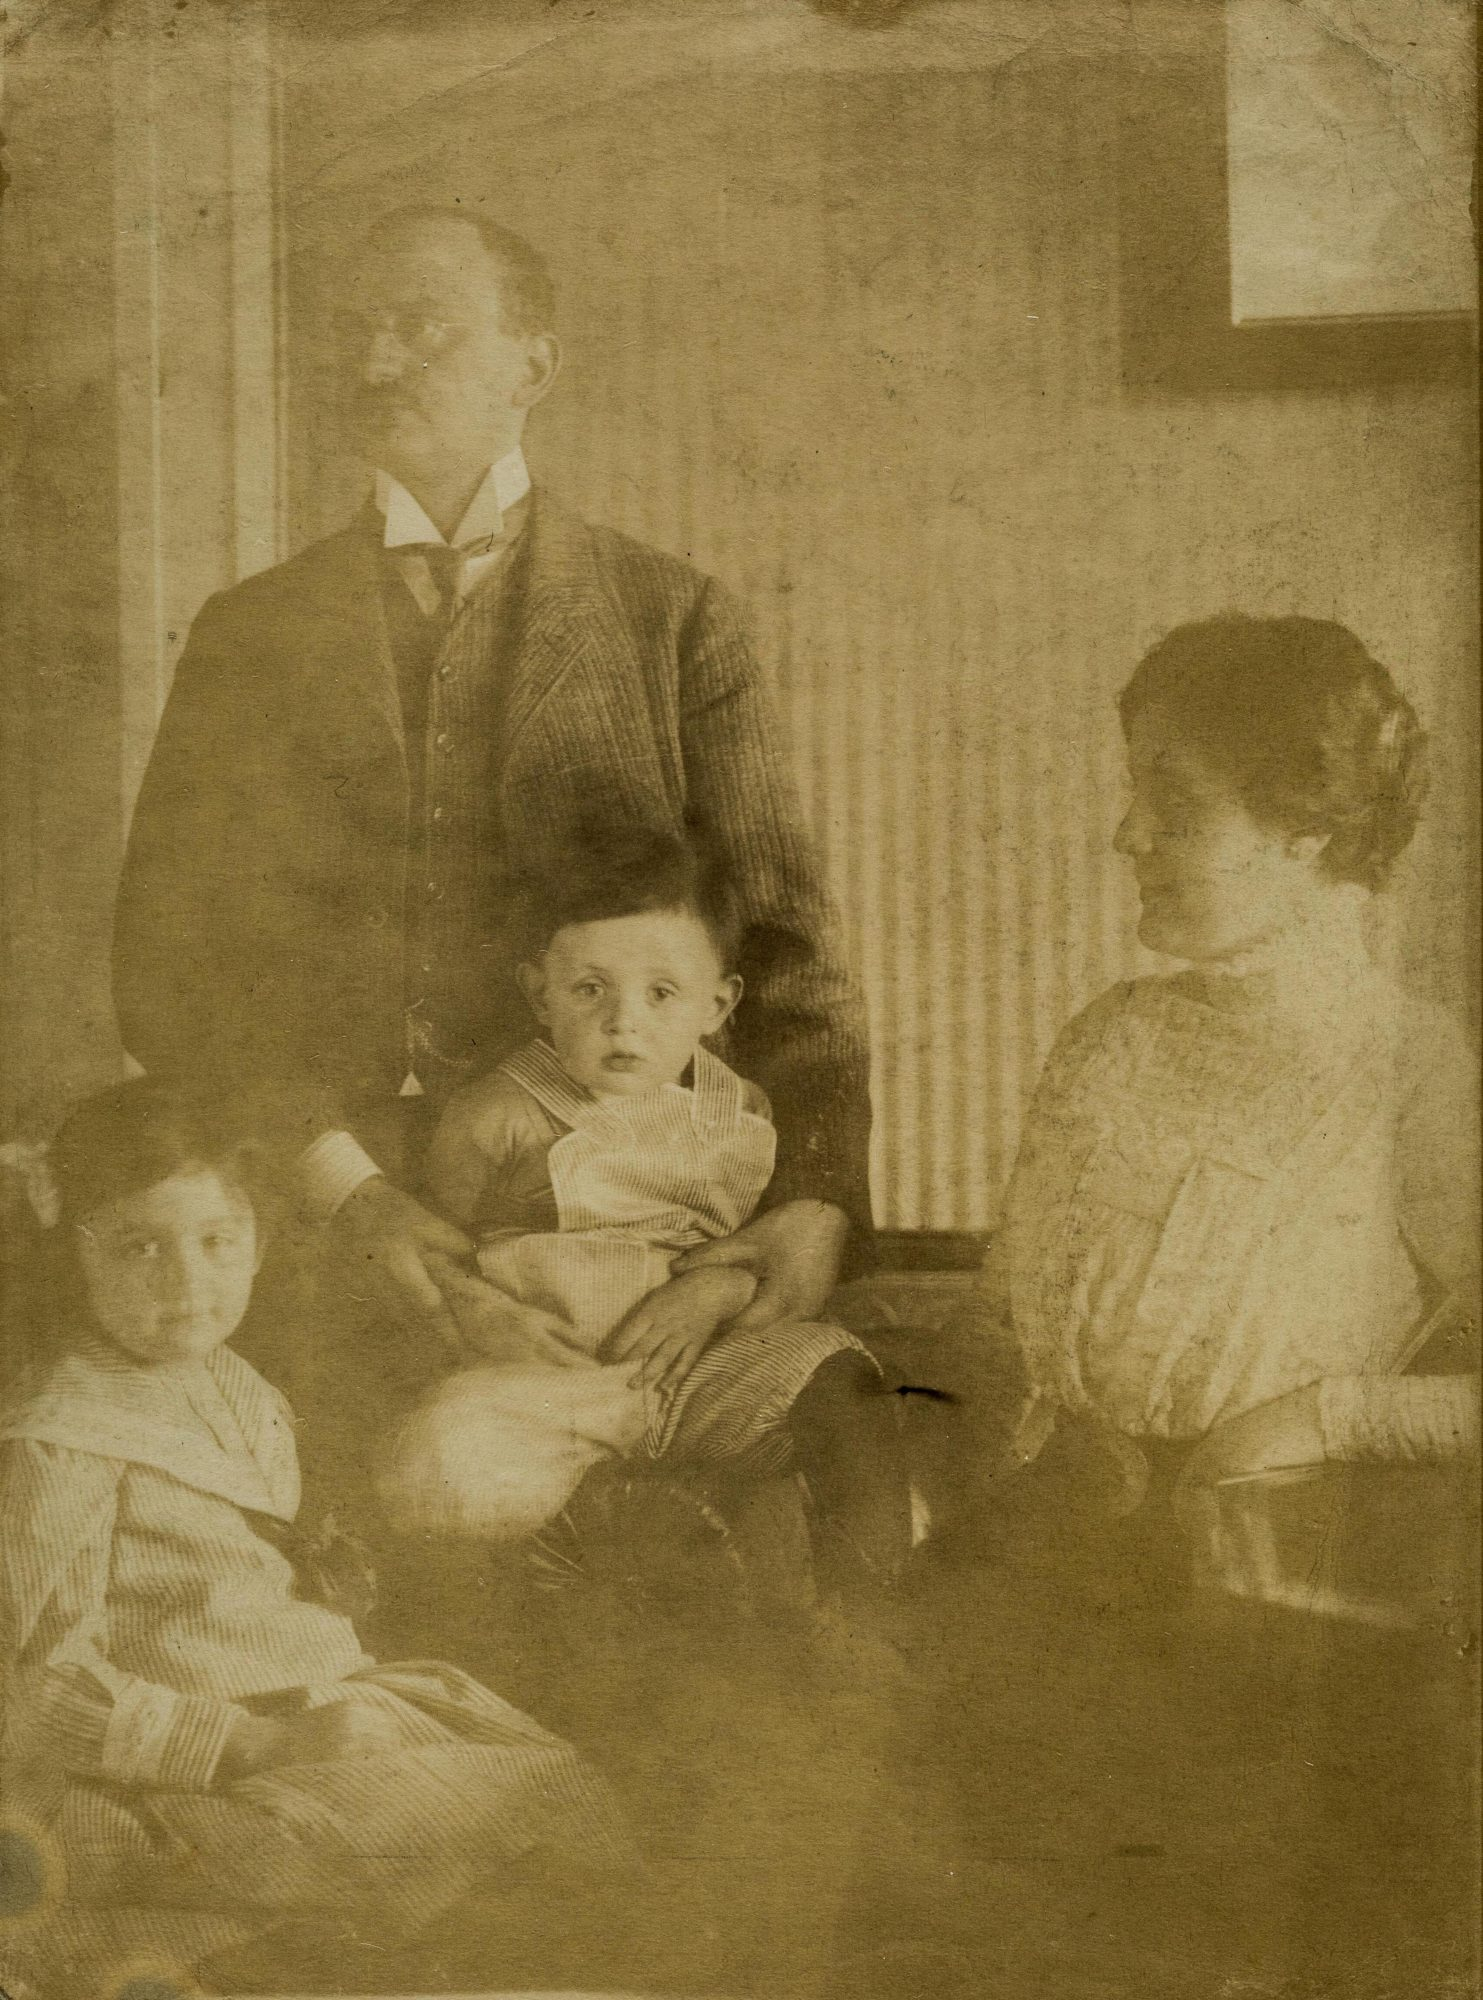 Photograph of Melanie and Arthur Klein with Melitta and Hans, around 1909.